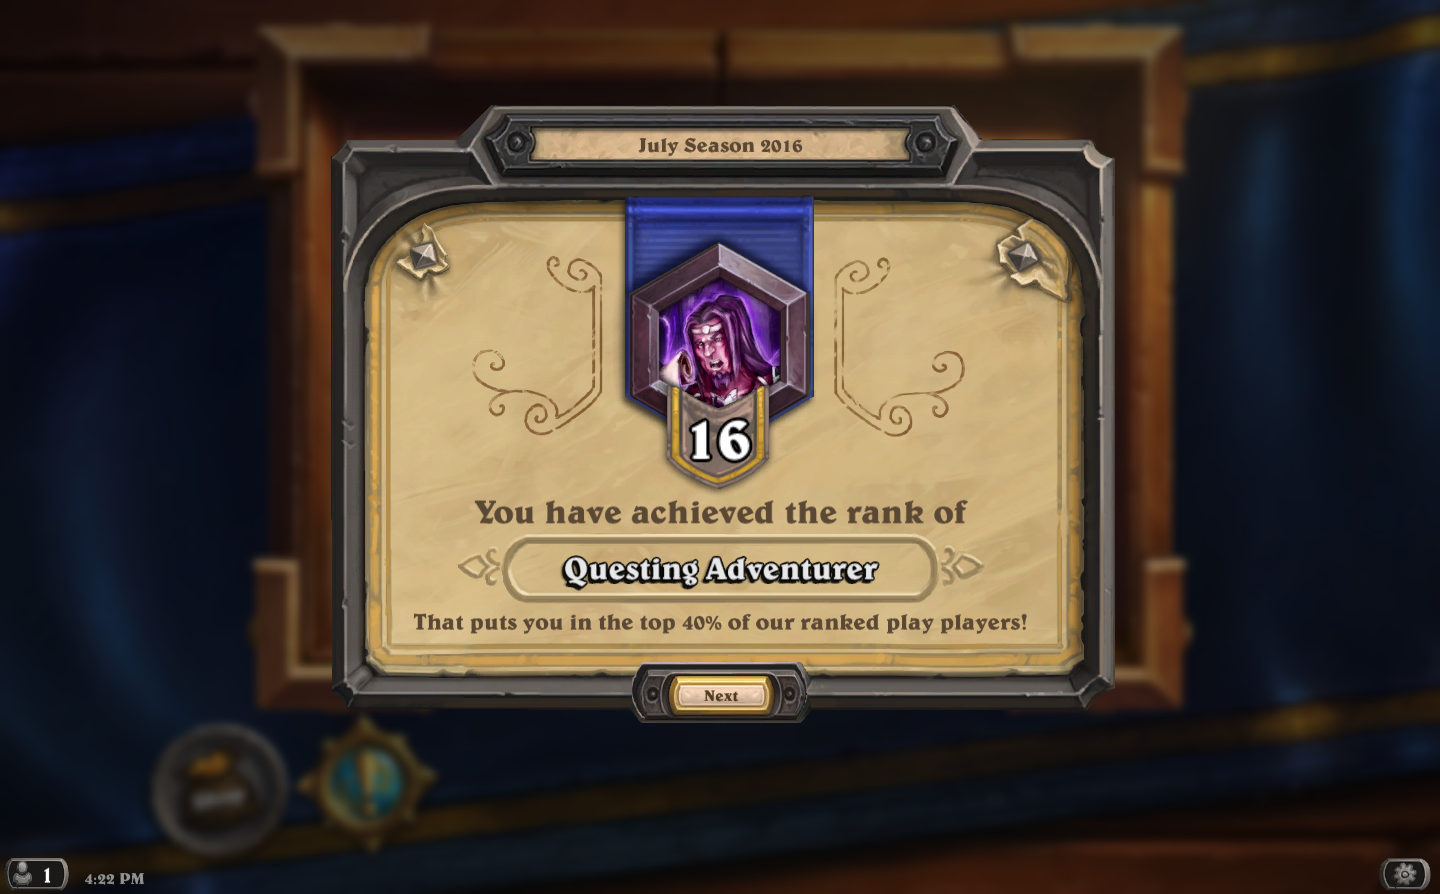 Hearthstone screenshot 08 01 16 16.22.34